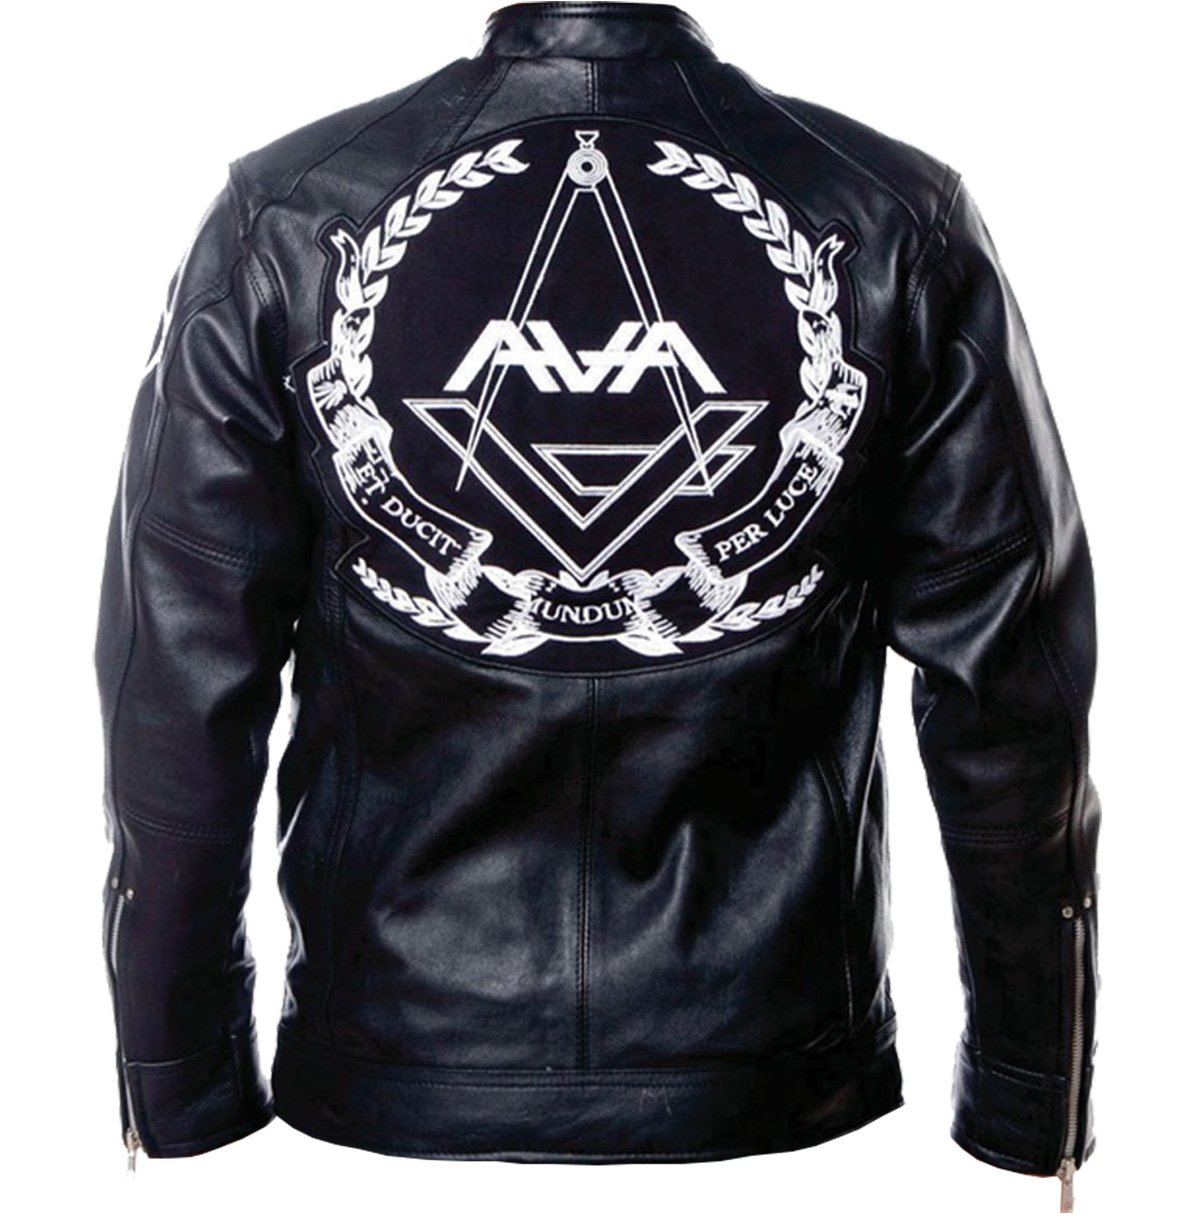 Love Tom DeLonge Angels and Airwaves Leather Jacket